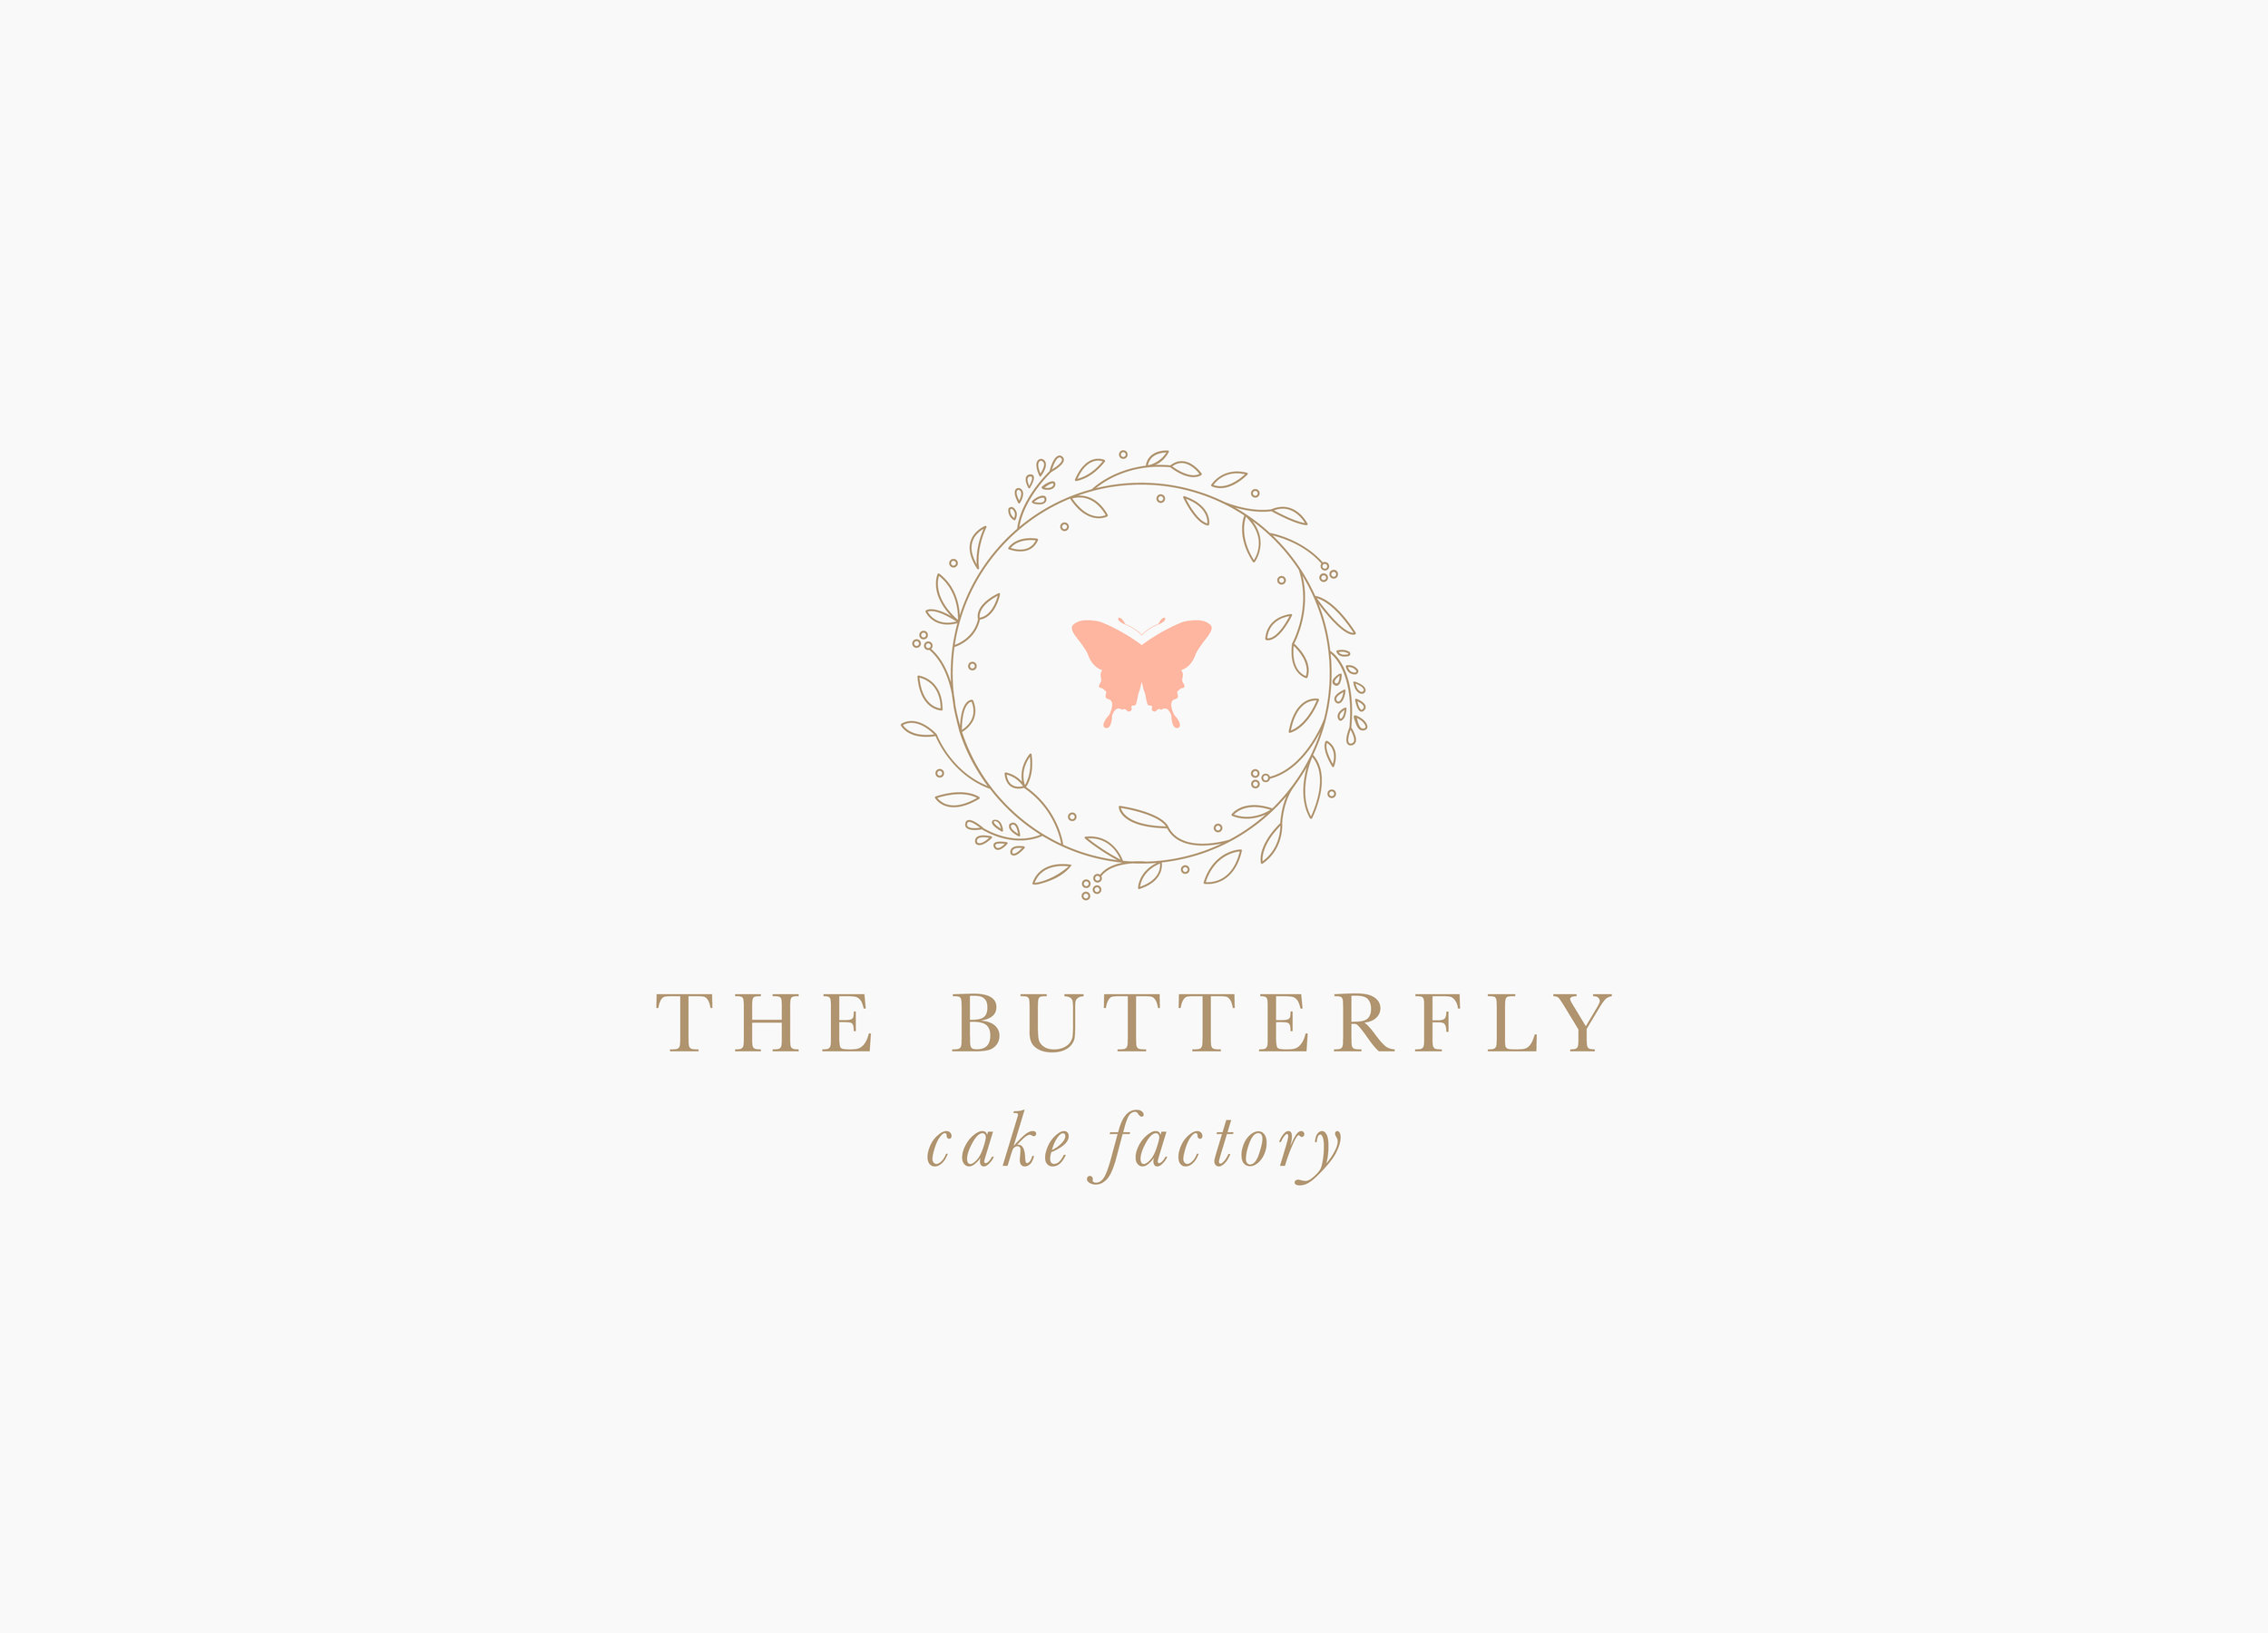 The Butterfly Cake Factory / Letterform Creative